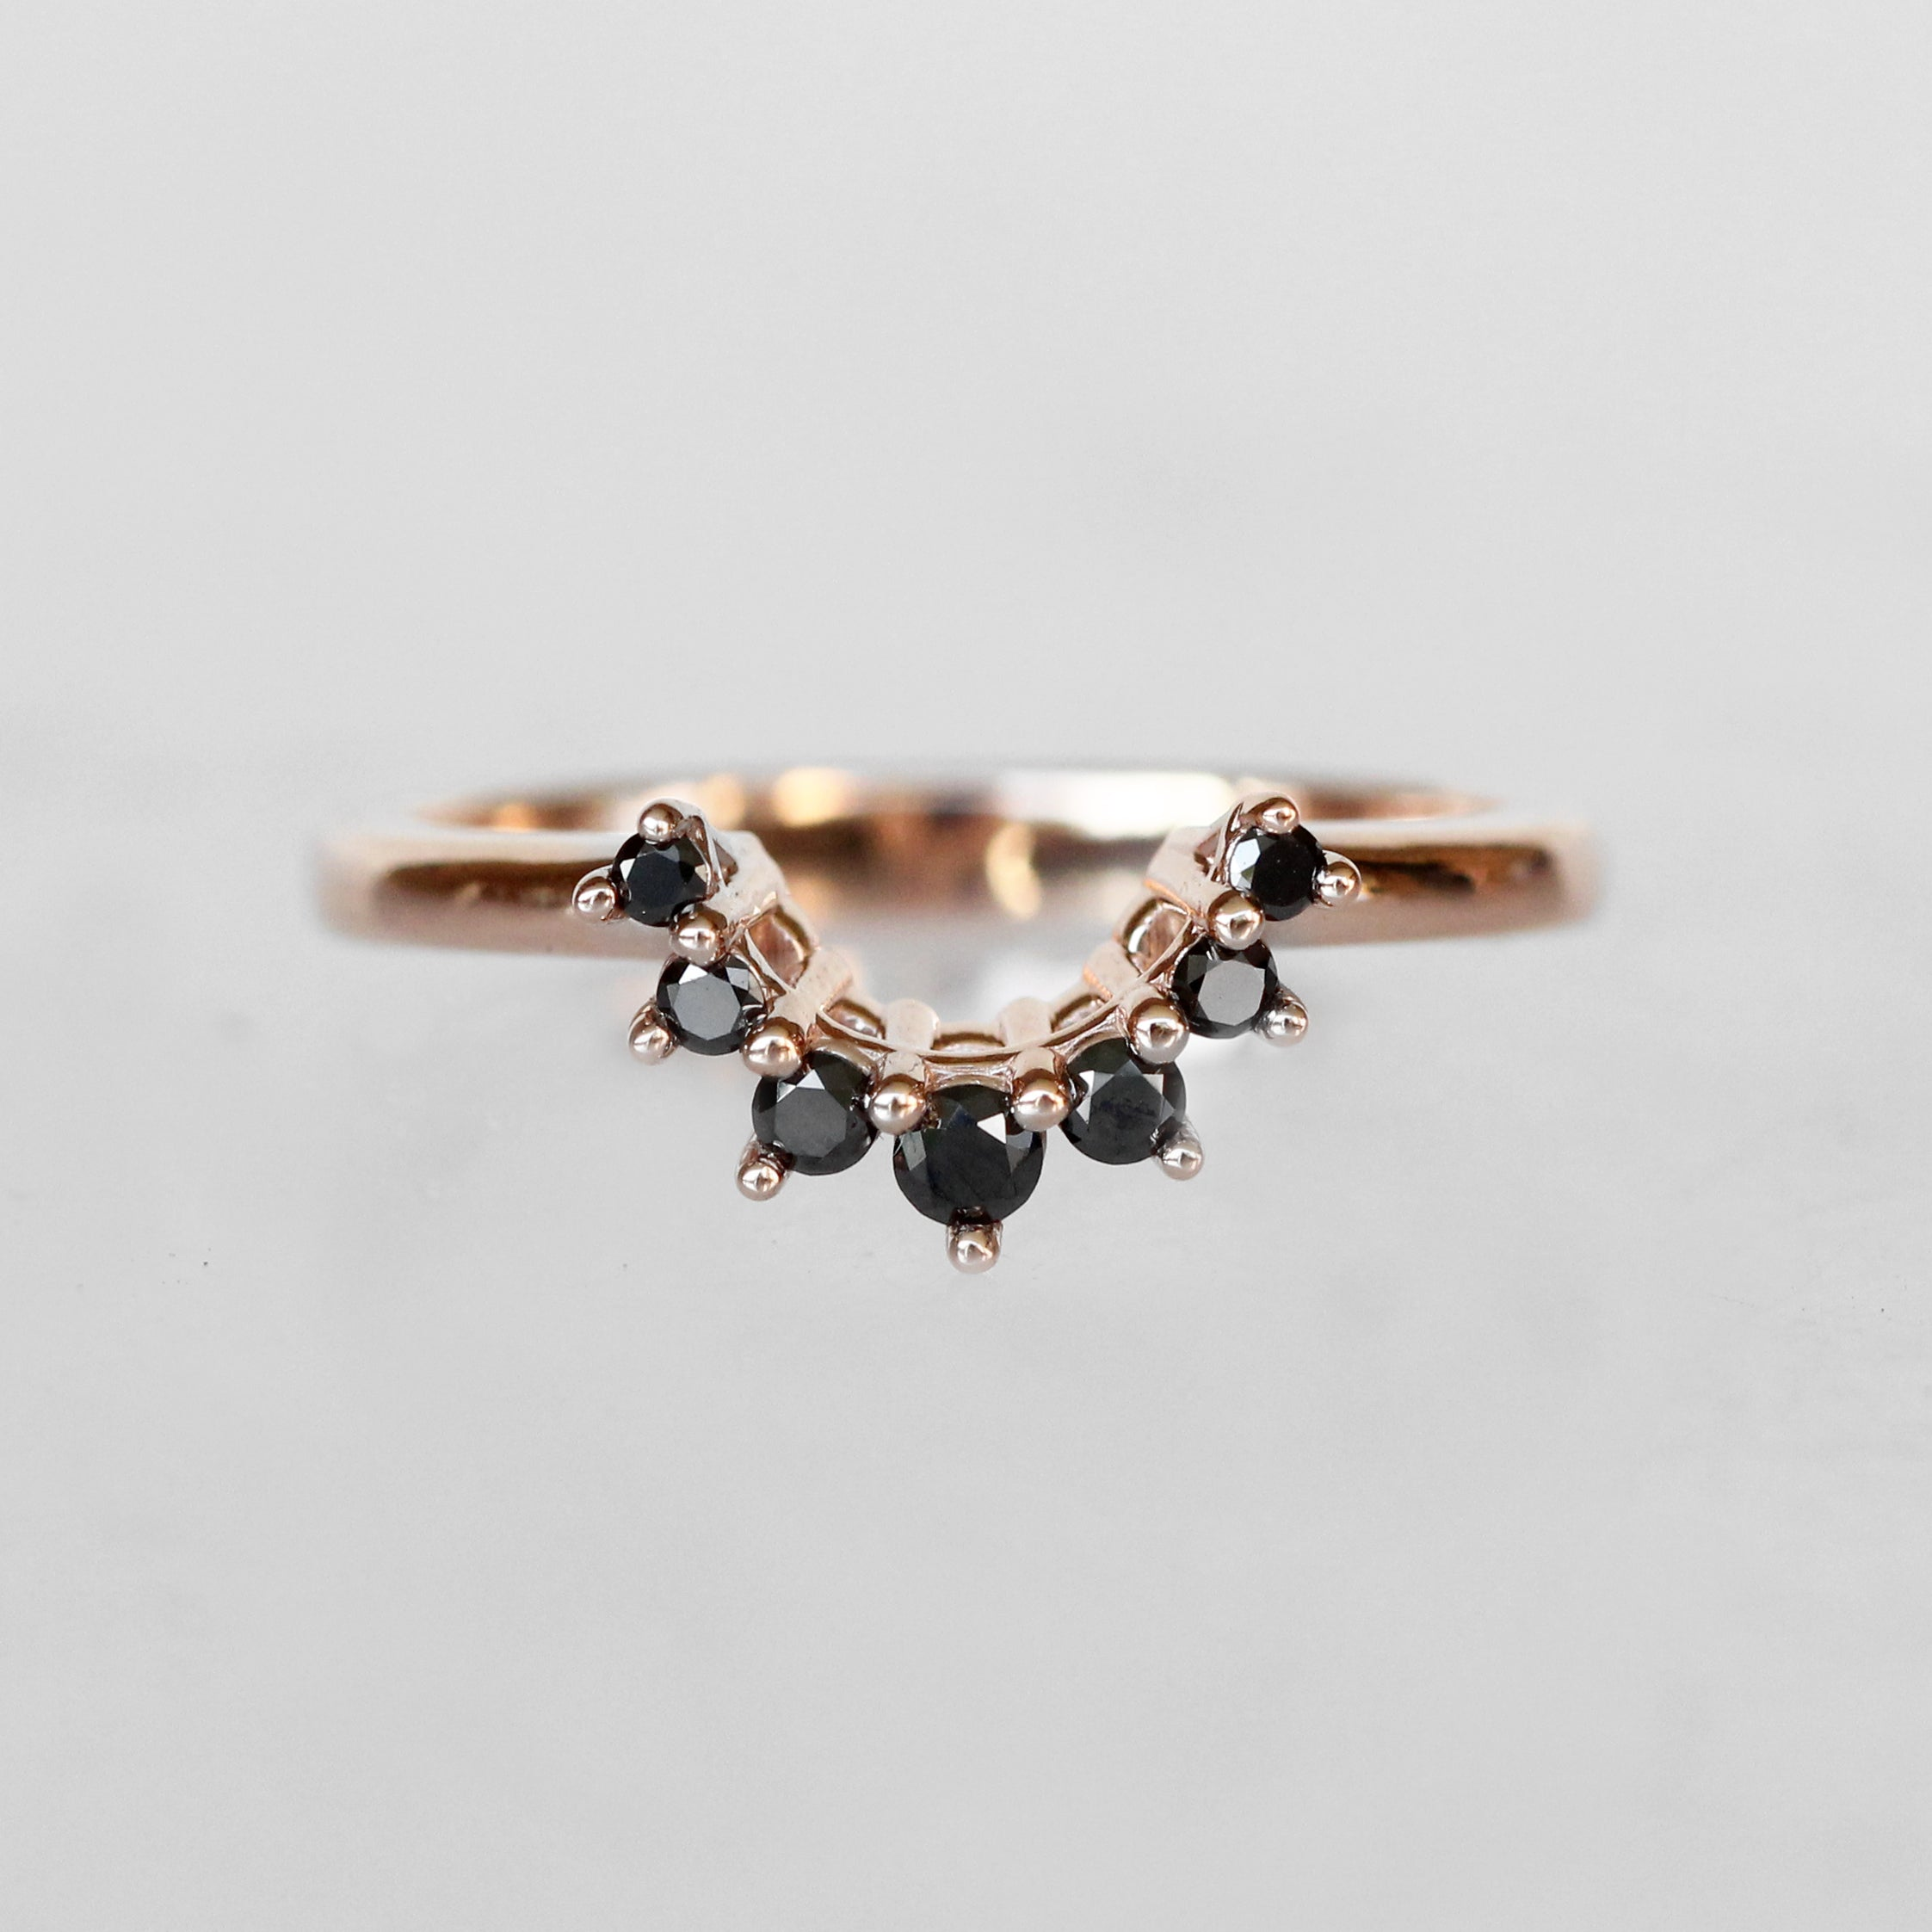 Ashlyn Ring with White Sapphire and Black Diamonds in 14k Gold - Midwinter Co. Alternative Bridal Rings and Modern Fine Jewelry